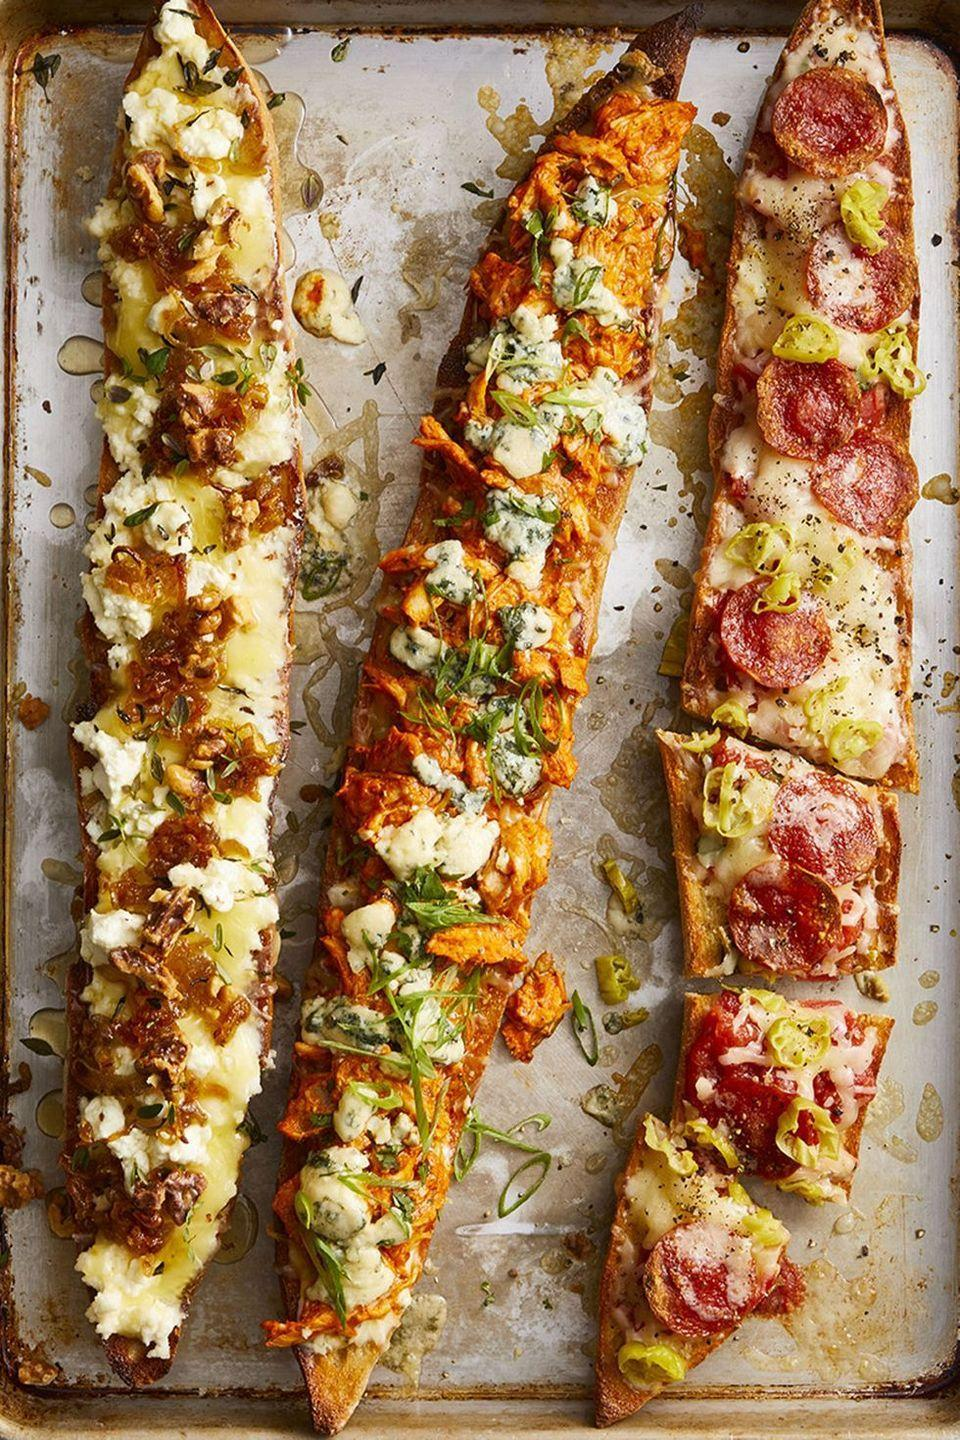 """<p>Is no game day in your household complete without a pizza or two. Give your guests an elevated version with these baked baguettes, featuring ingredients like Buffalo chicken, shallots and goat cheese, and pepperoni.</p><p><em><a href=""""https://www.goodhousekeeping.com/food-recipes/easy/a47670/baguette-pizza-recipe/"""" rel=""""nofollow noopener"""" target=""""_blank"""" data-ylk=""""slk:Get the recipe for Baguette Pizza»"""" class=""""link rapid-noclick-resp"""">Get the recipe for Baguette Pizza»</a></em></p>"""